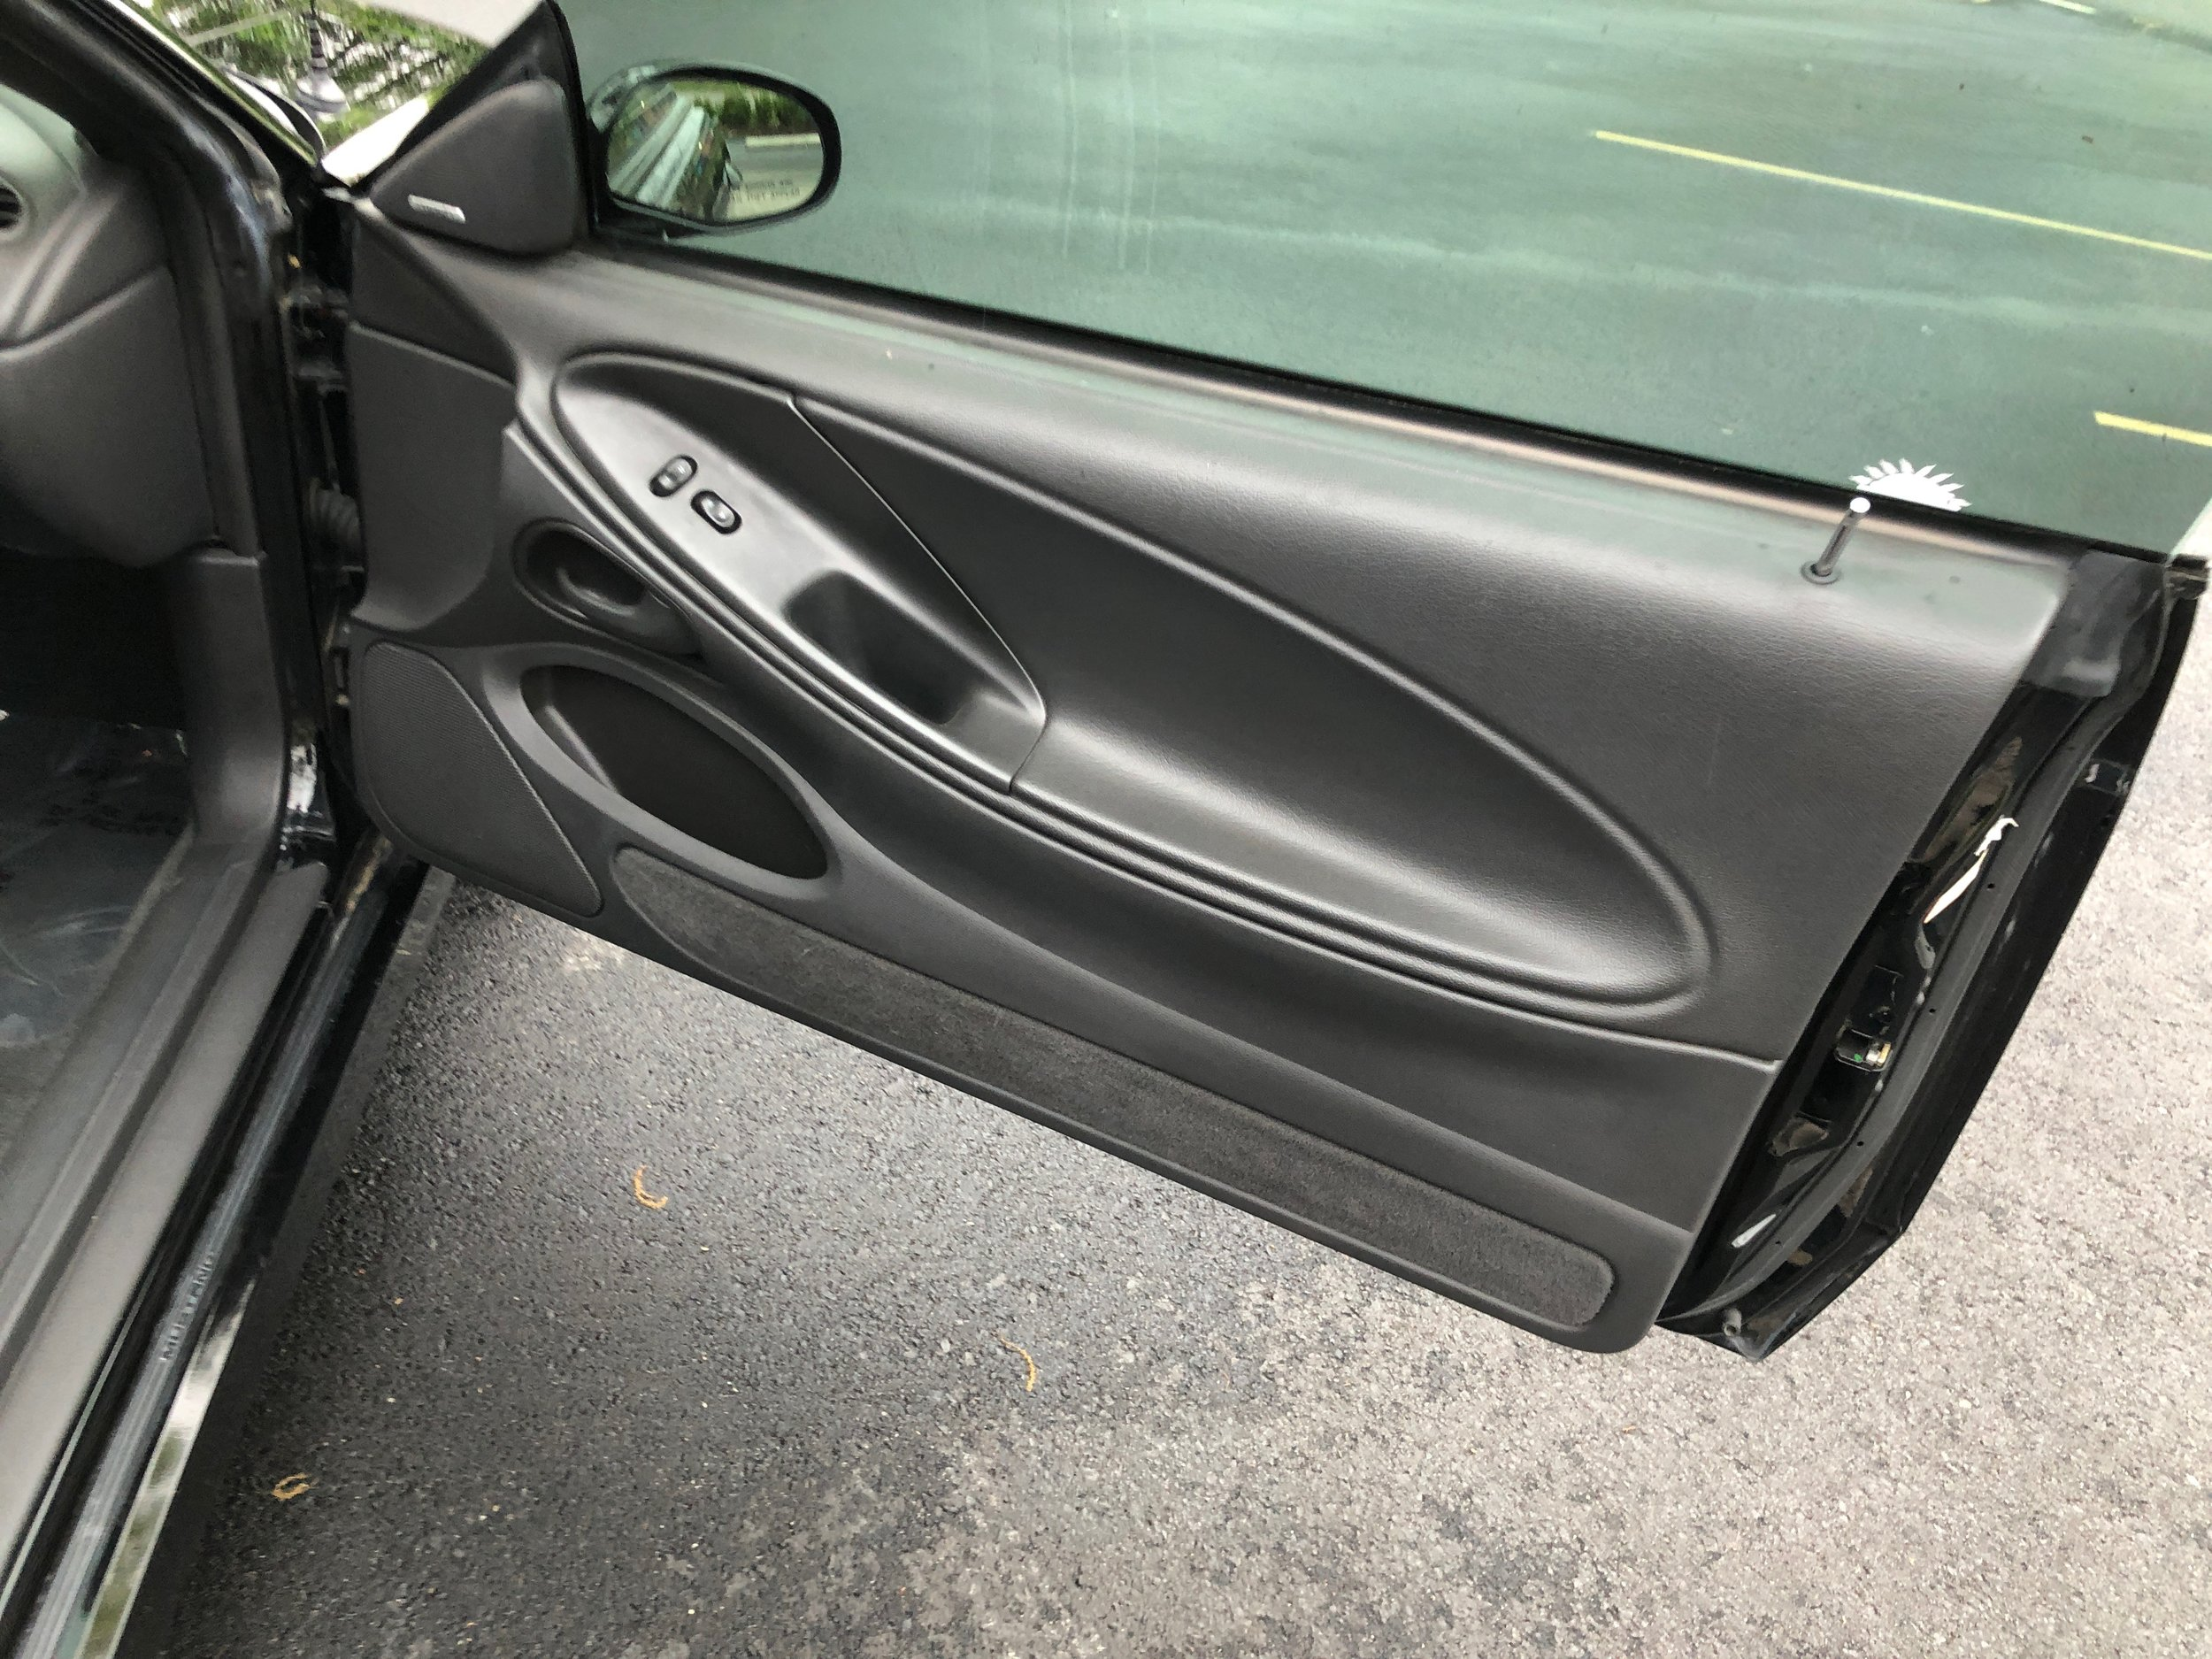 2003 Ford Mustang Svt Cobra Car Door